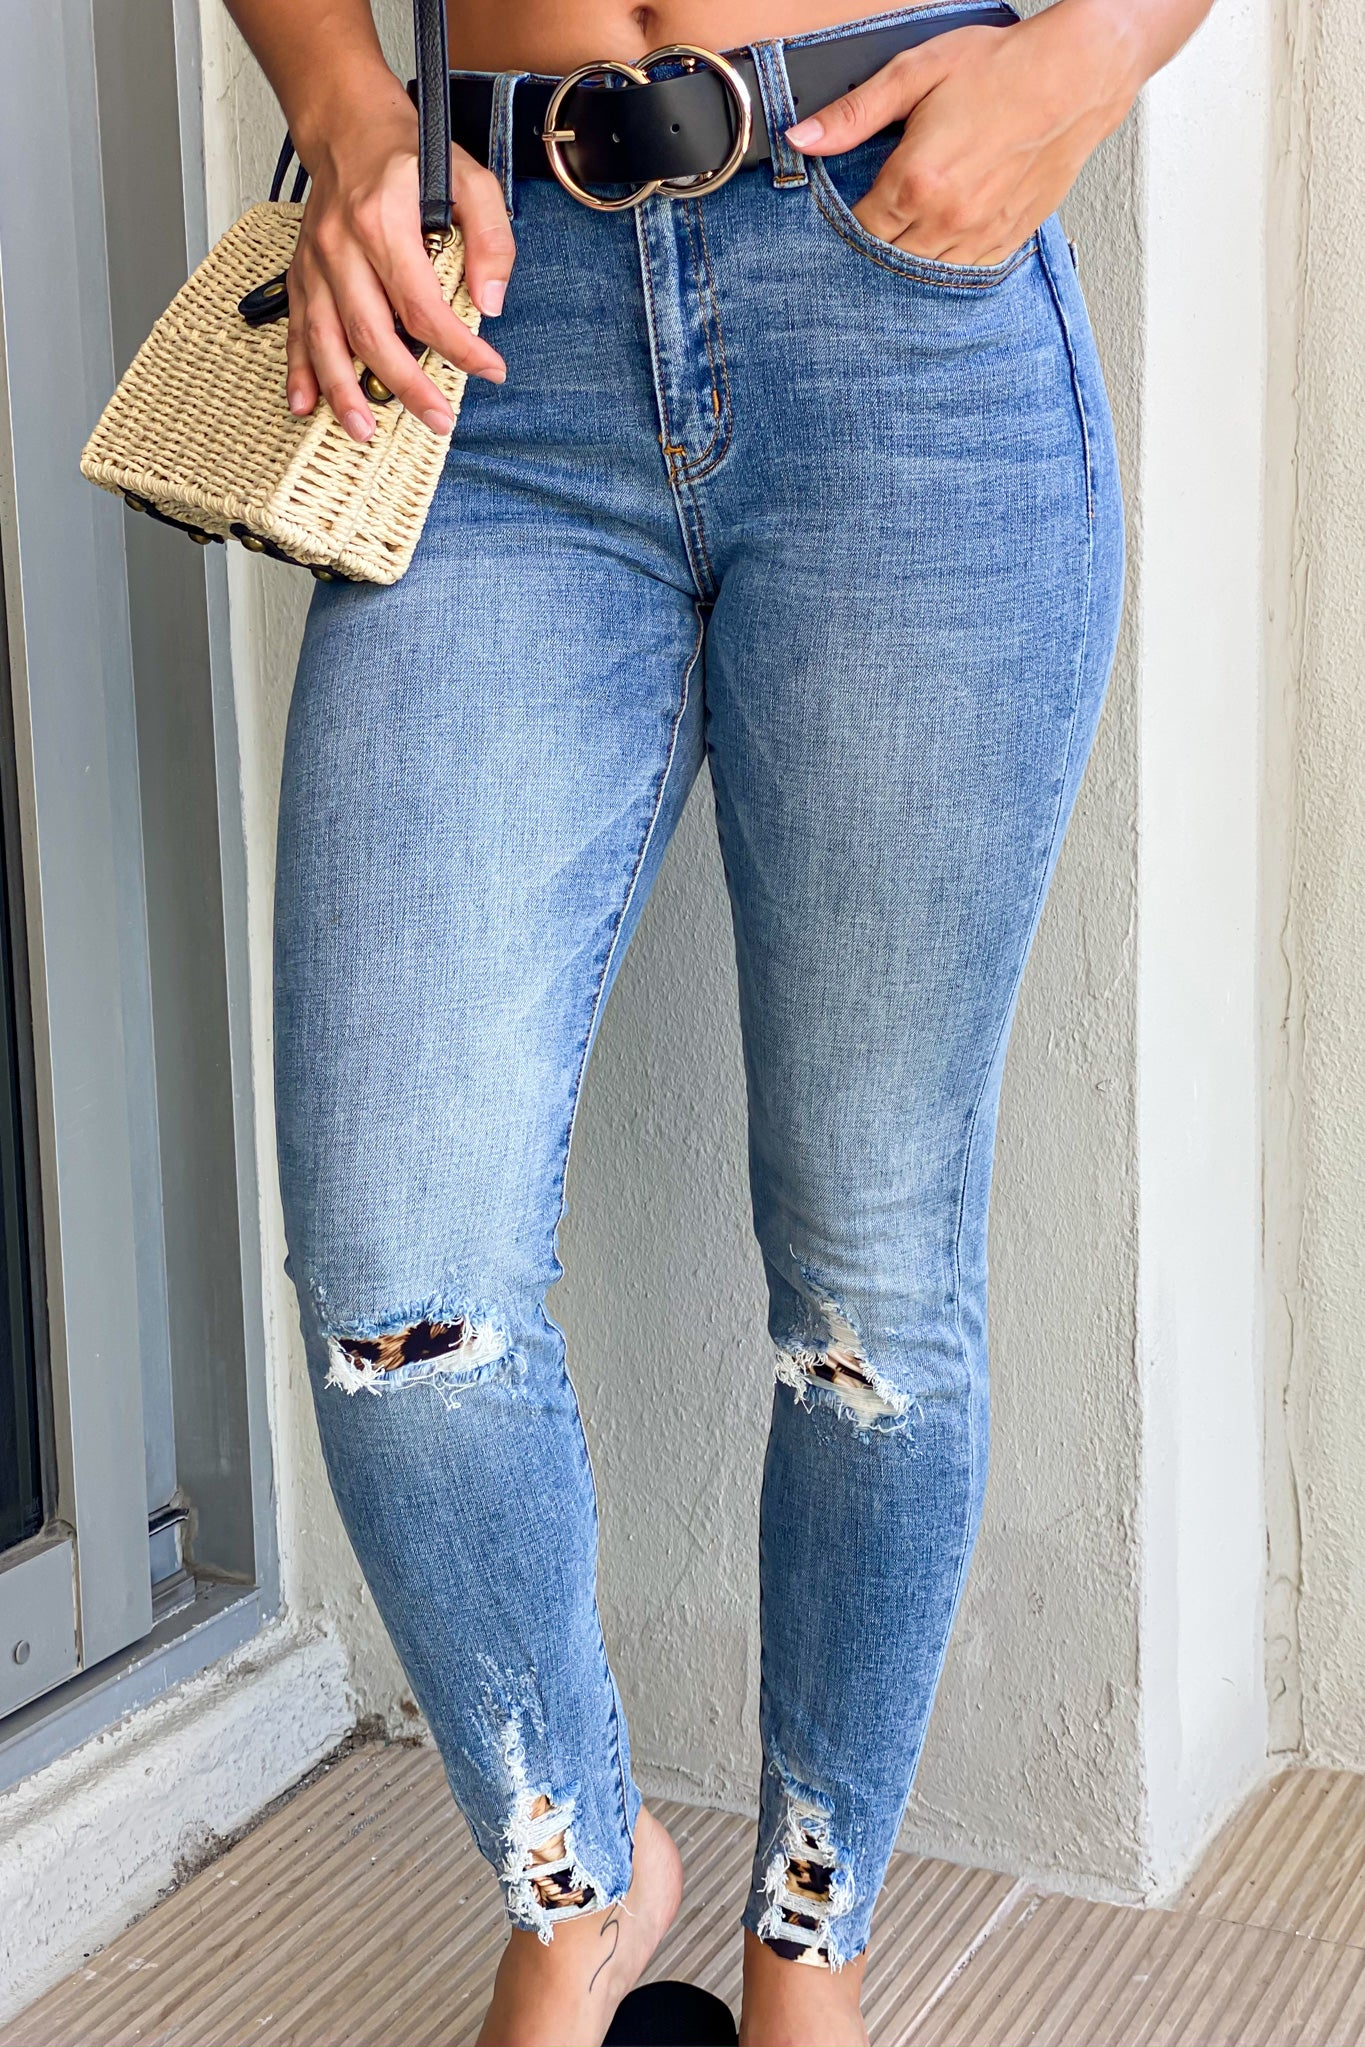 medium wash jeans with leopard print details